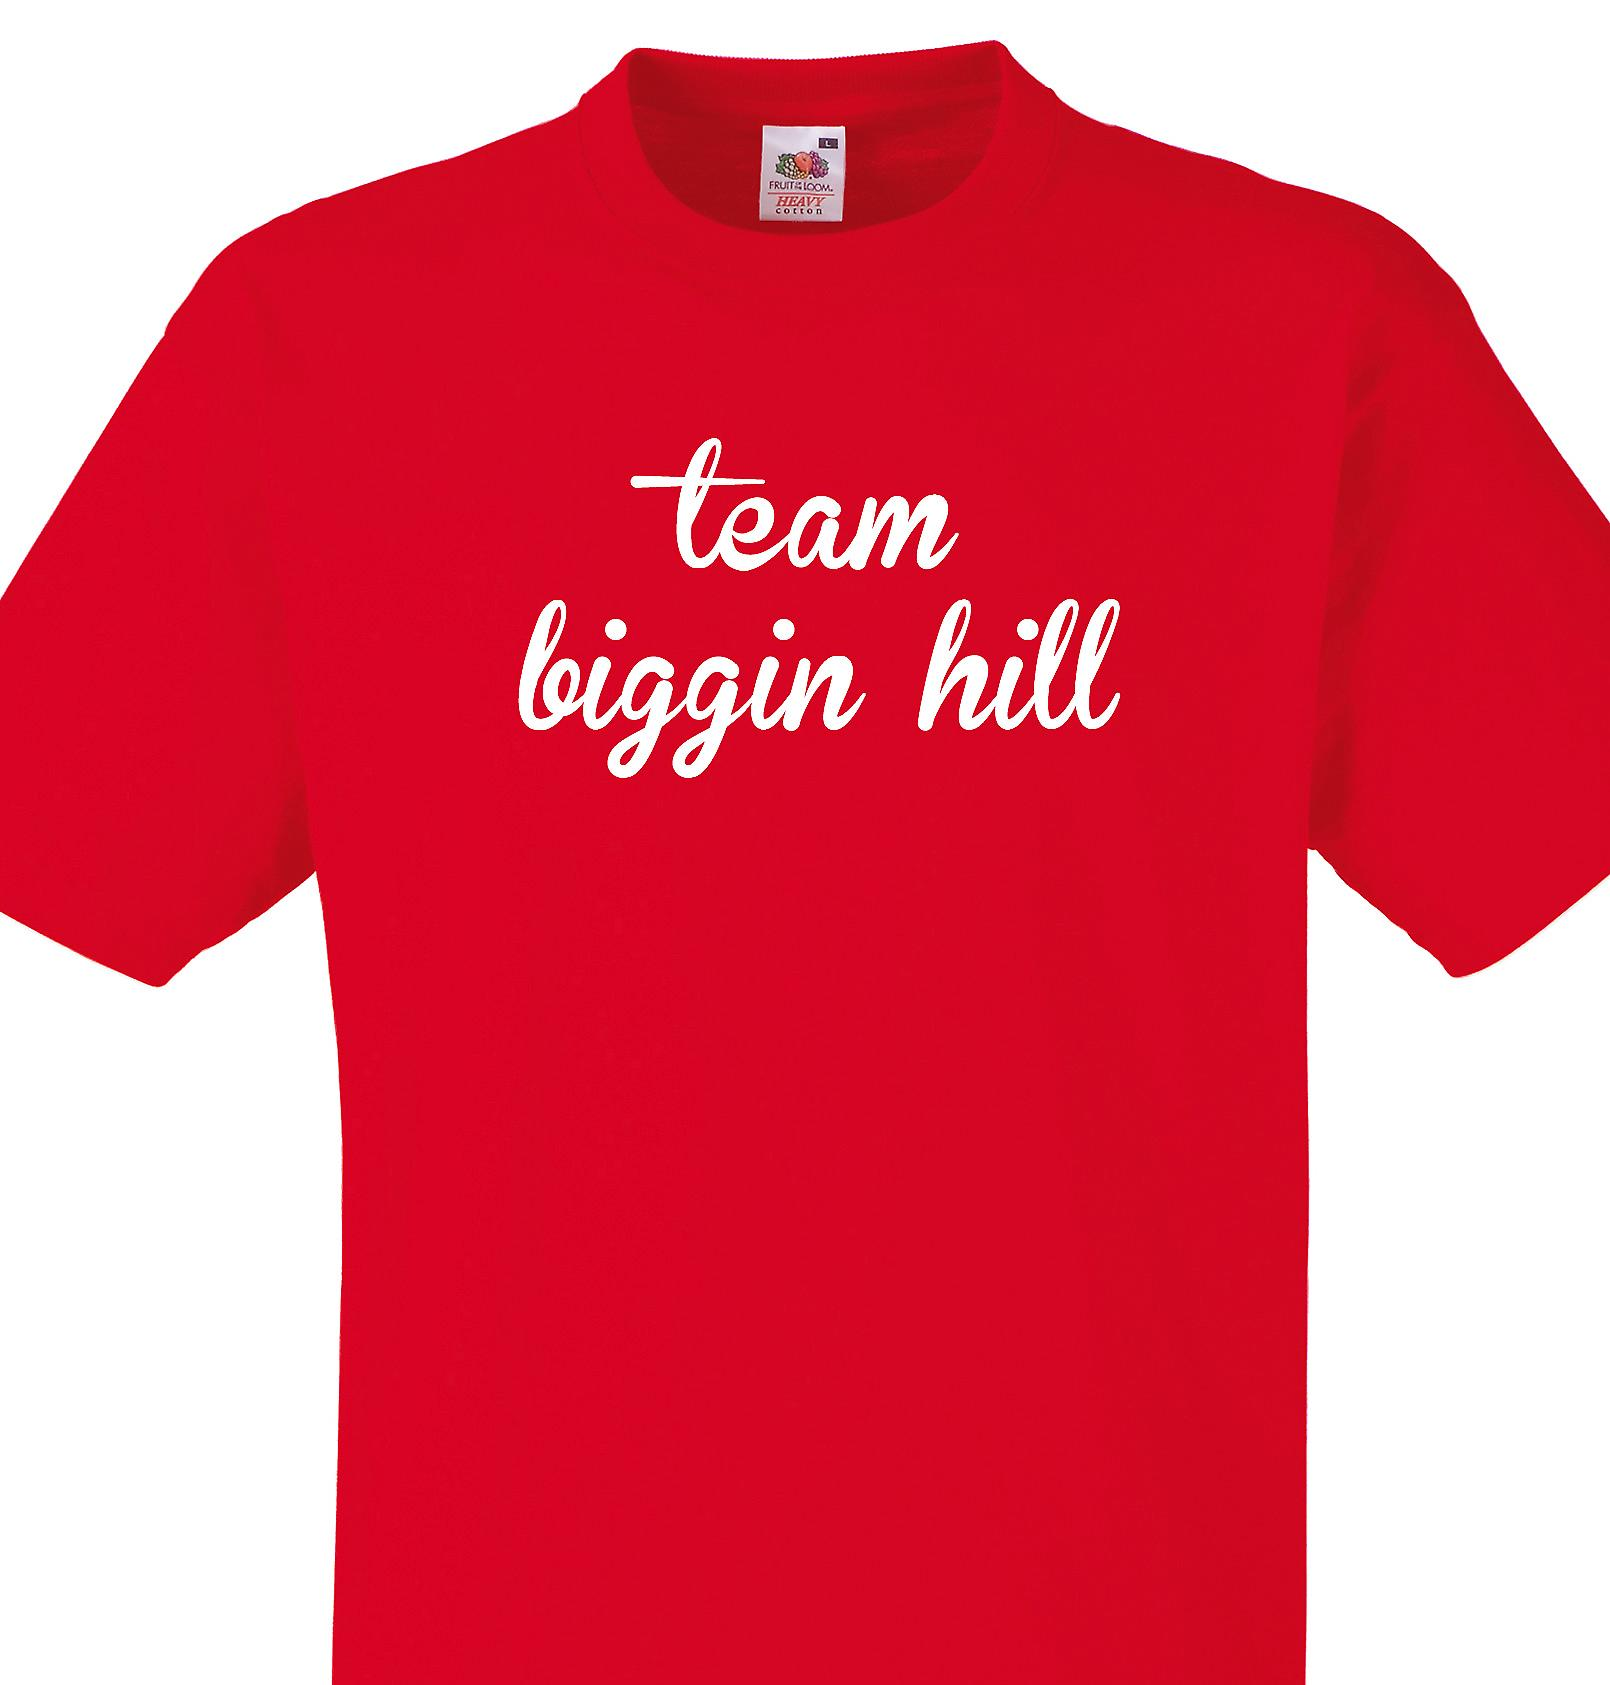 Team Biggin hill Red T shirt